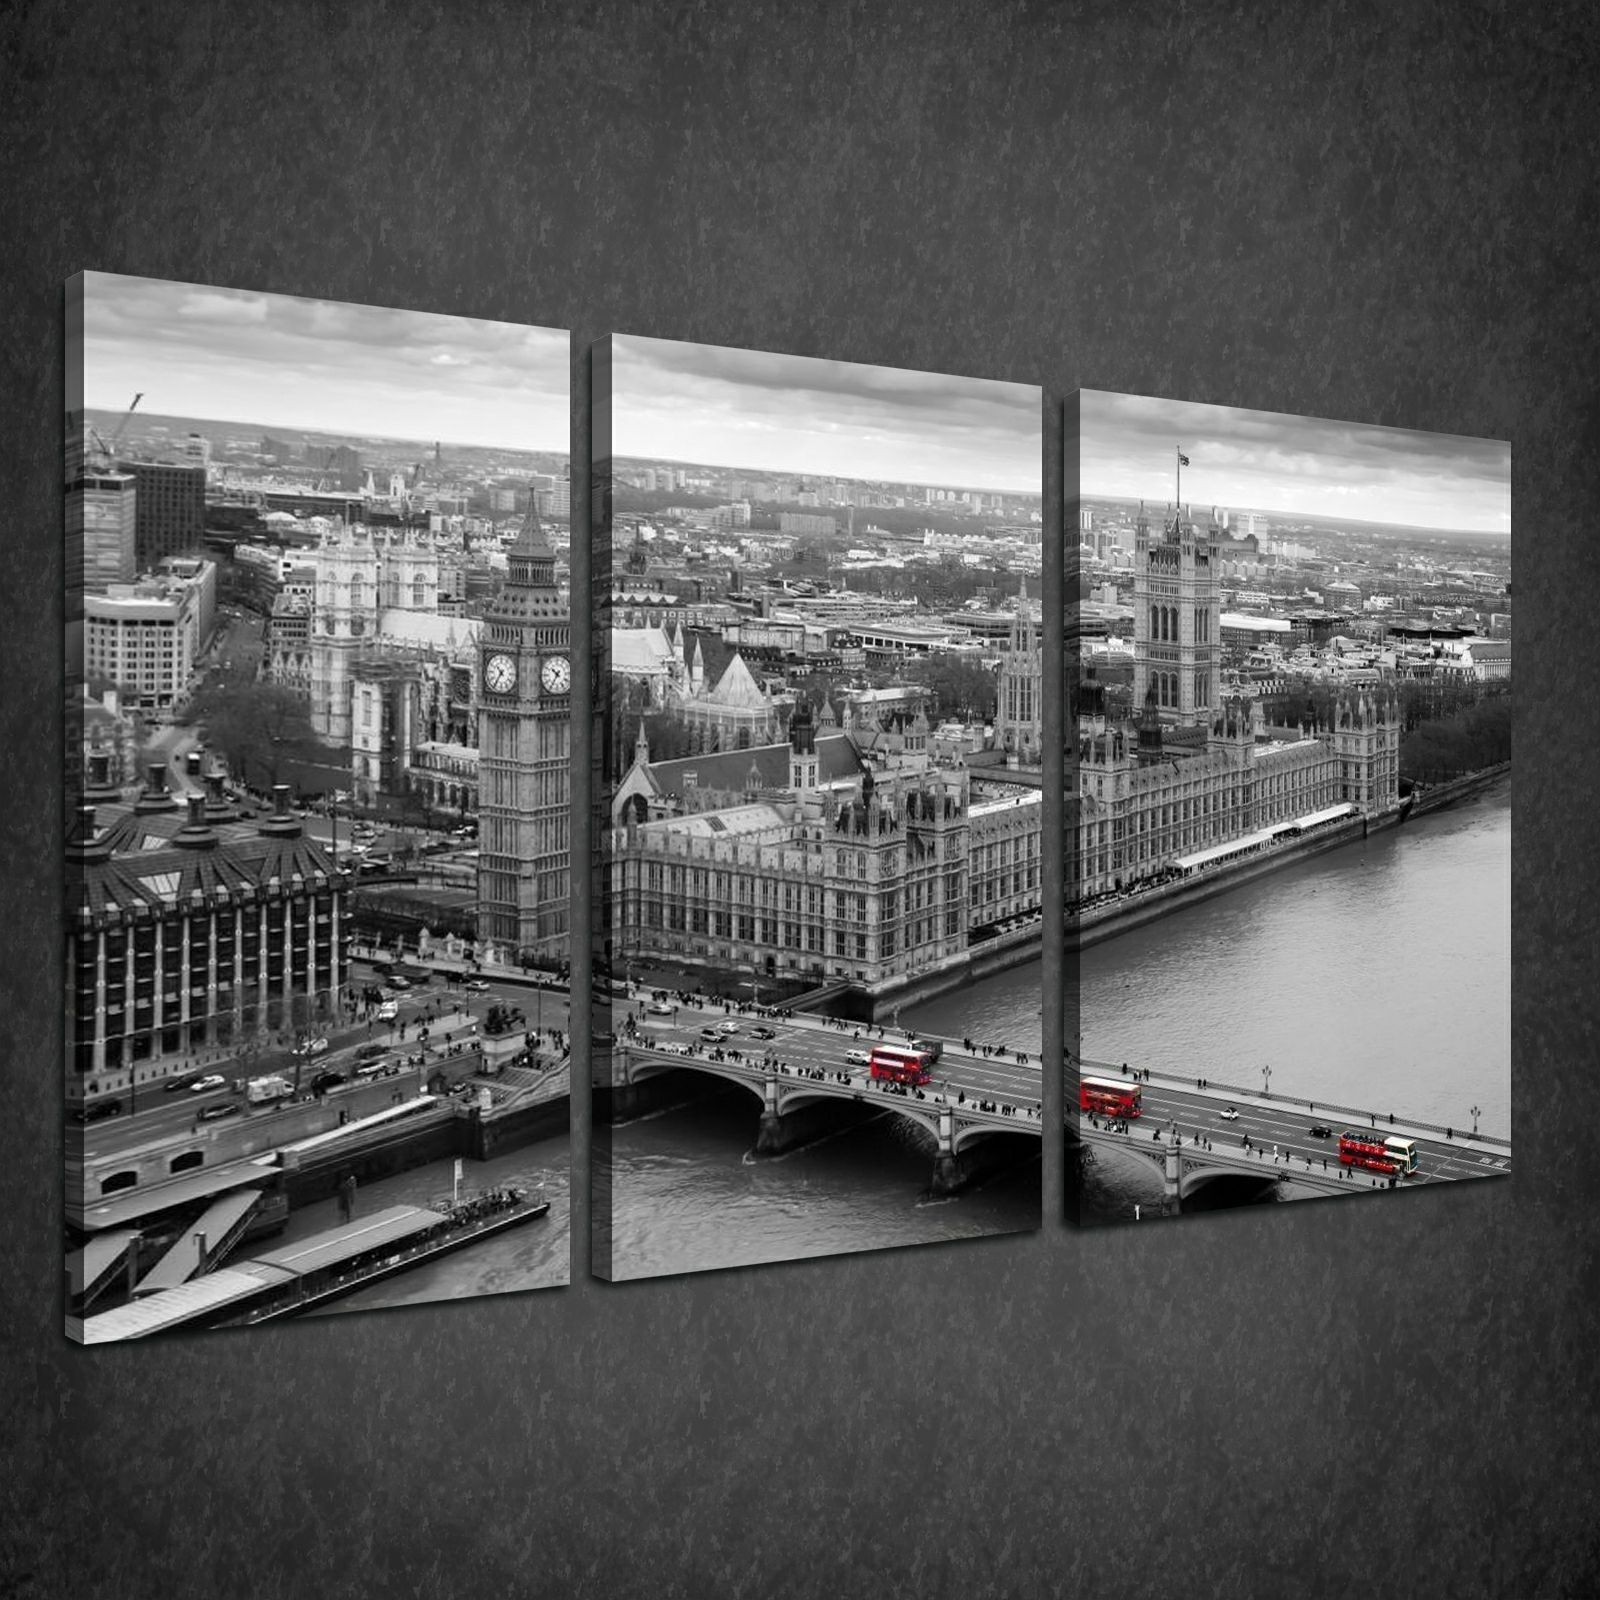 London Wall Art Unique Wall Art London – Wall Decoration Ideas In 2017 London Wall Art (Gallery 10 of 20)